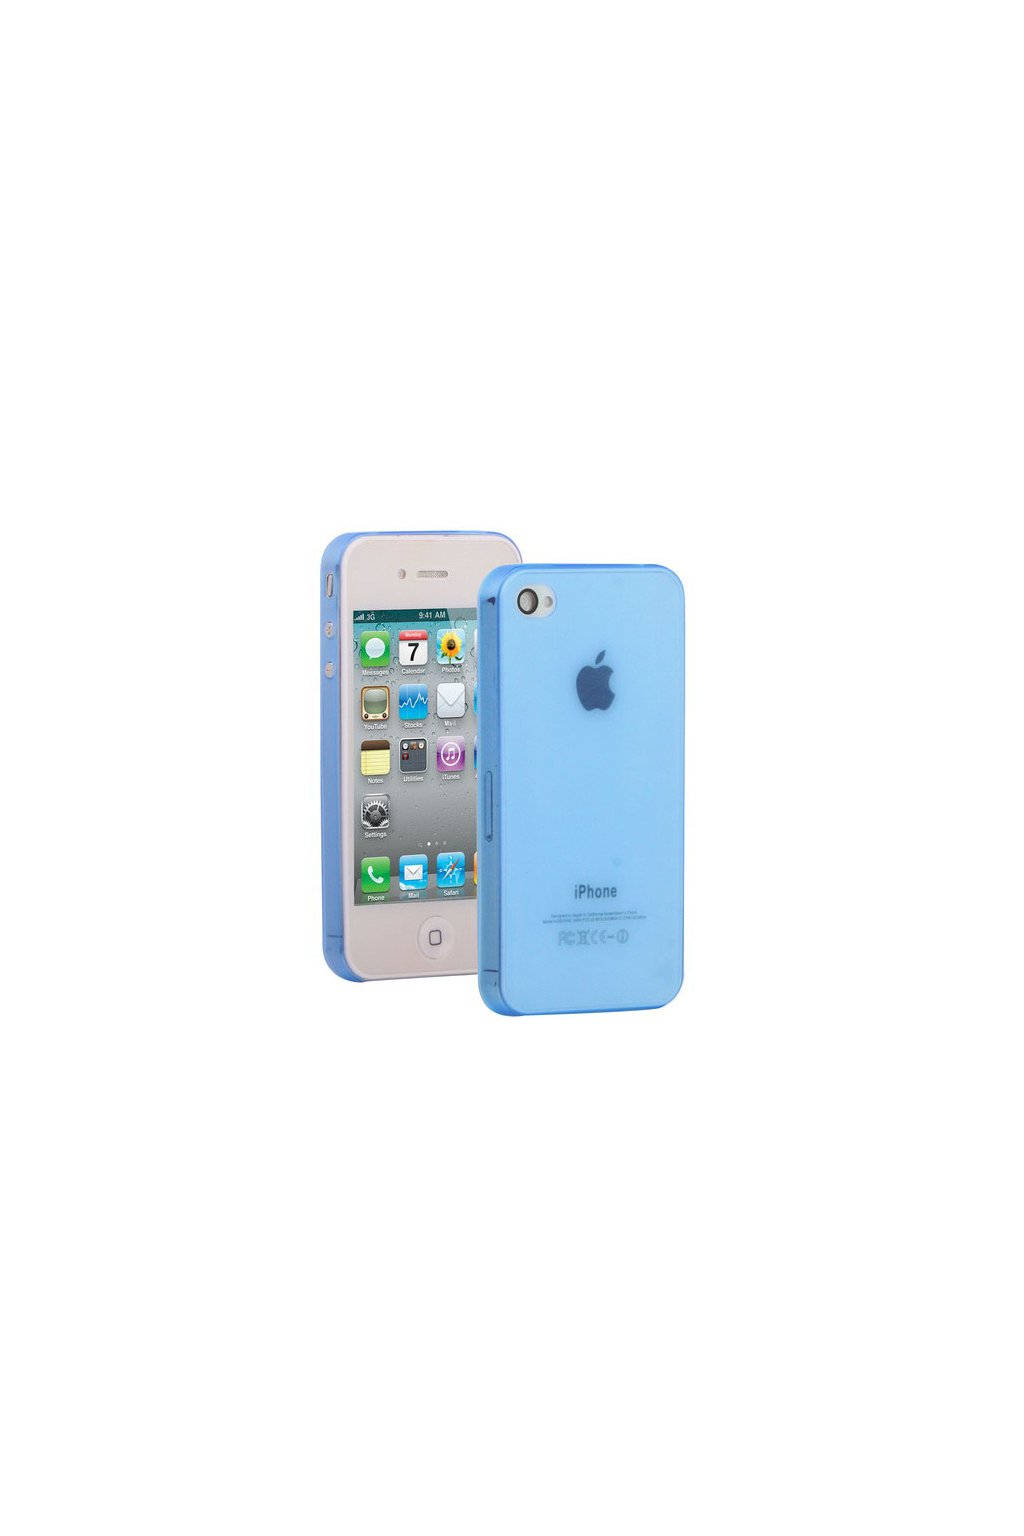 Pouzdro ultra tenké Thin iPhone 4/4S, blue/modrá